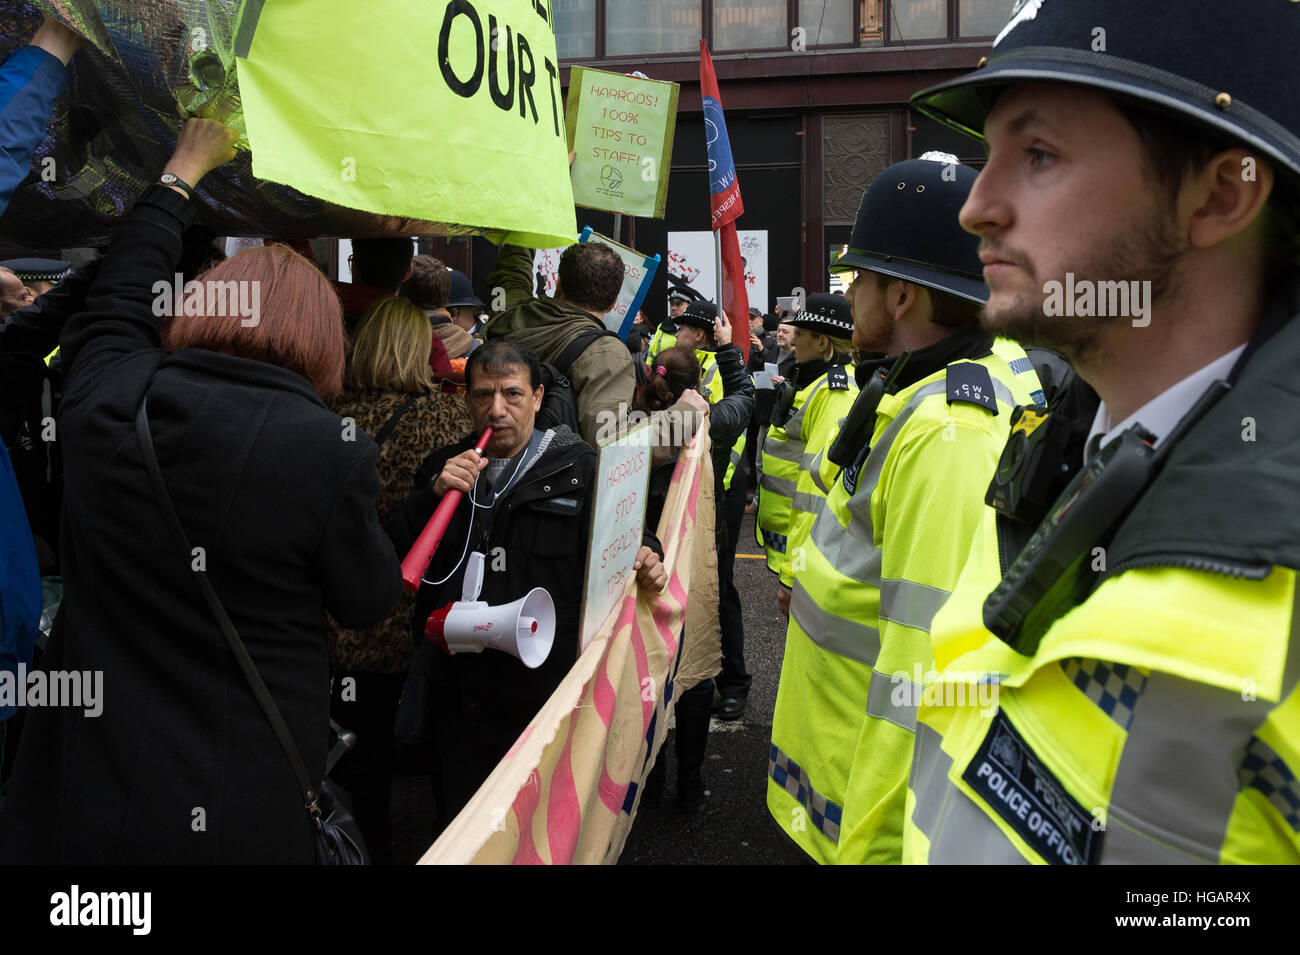 London, UK. 7th January 2017. United Voices of the World union organised the protest outside luxury department store Stock Photo